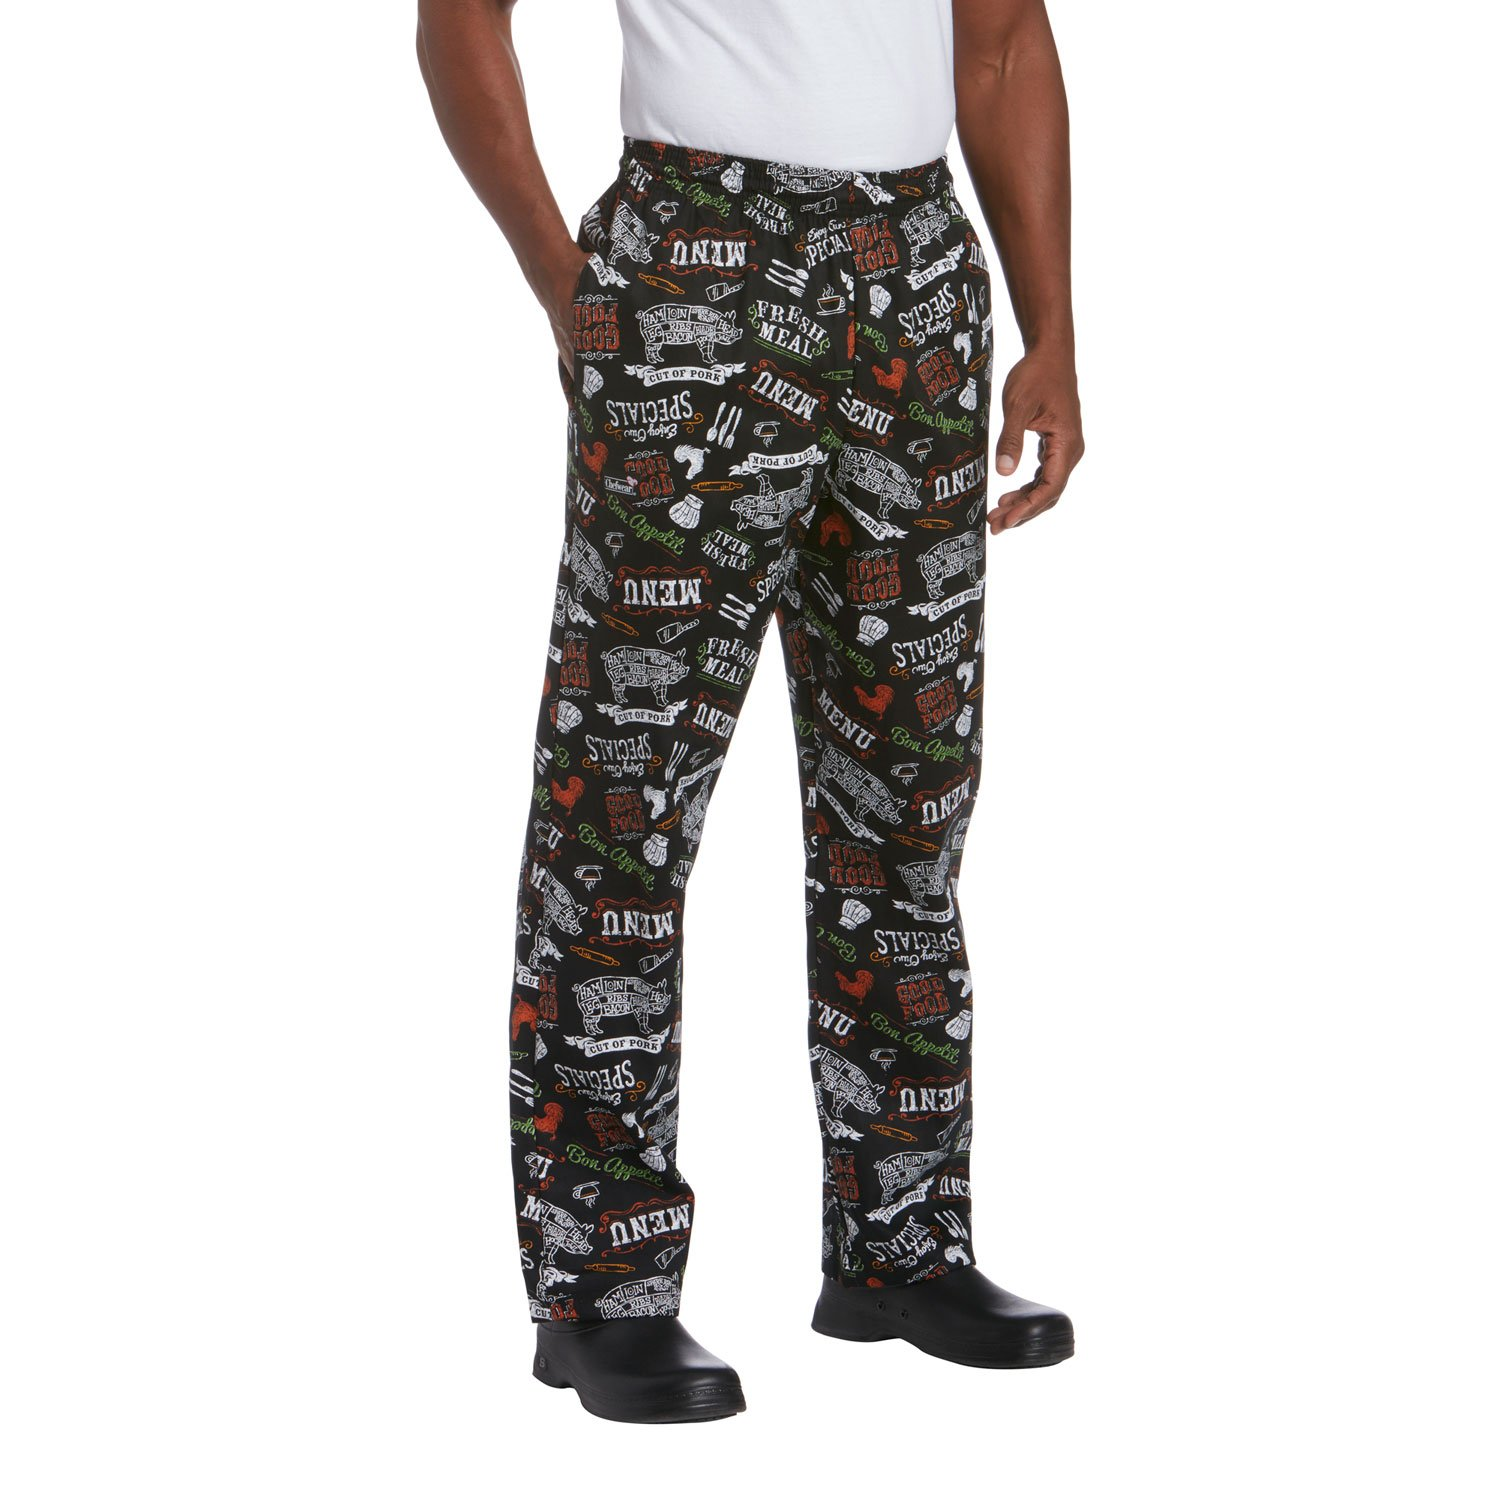 Chefwear 3500-250 Men's Ultimate Chef Pant 2XL Prime Cuts by Chefwear